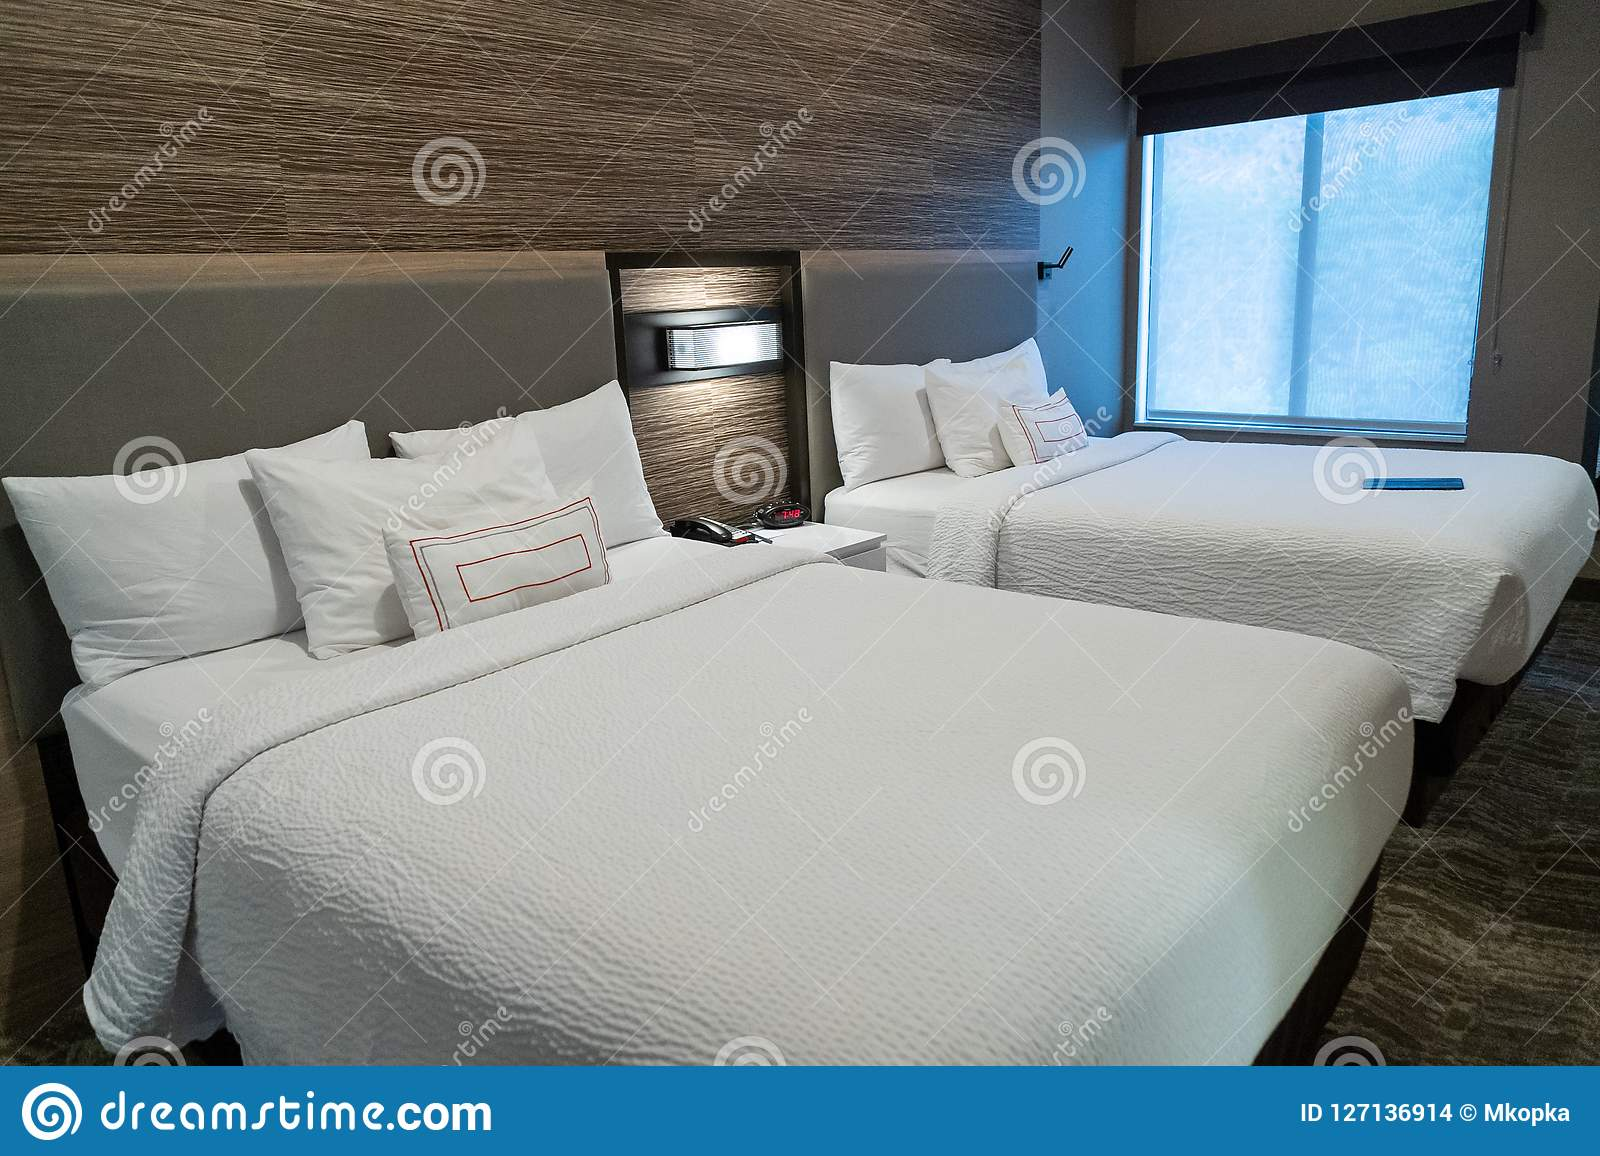 Modern Hotel Room With Two Queen Beds With Contemporary